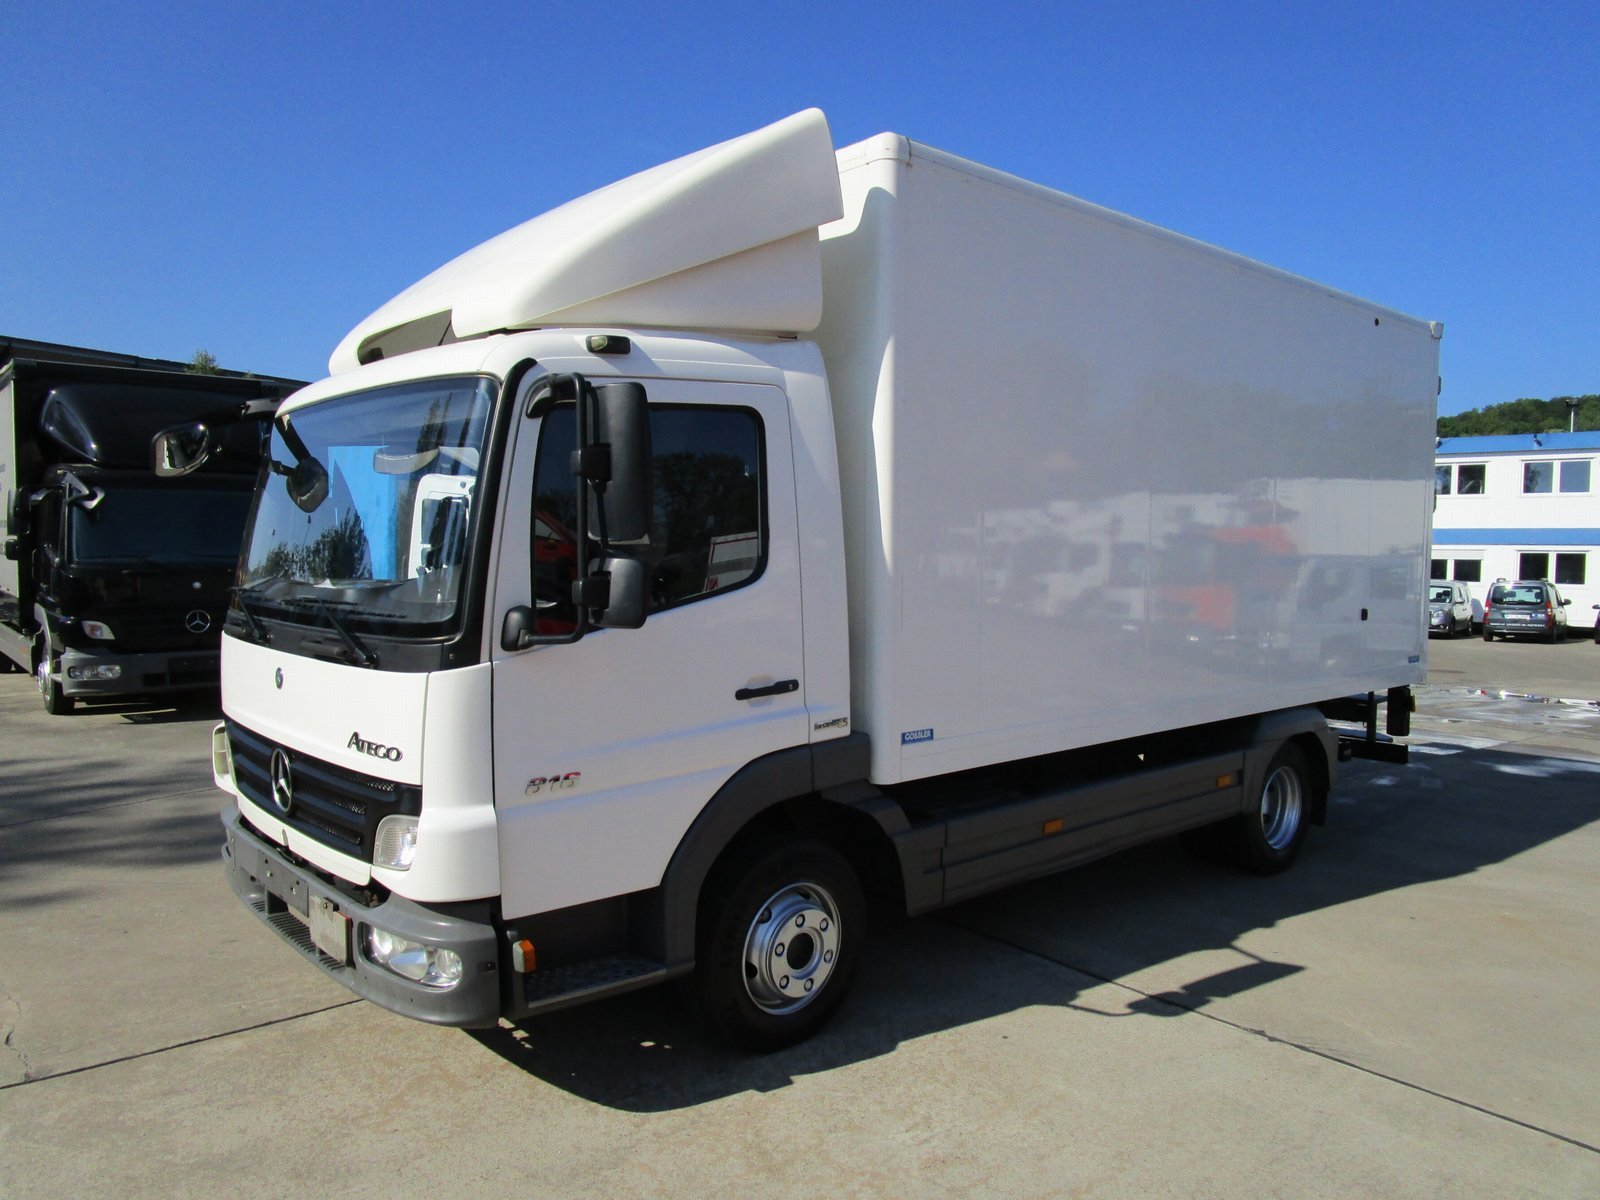 ATEGO 816 Koffer 5,10 m LBW 1 t*EURO 5*NL 2,59 T